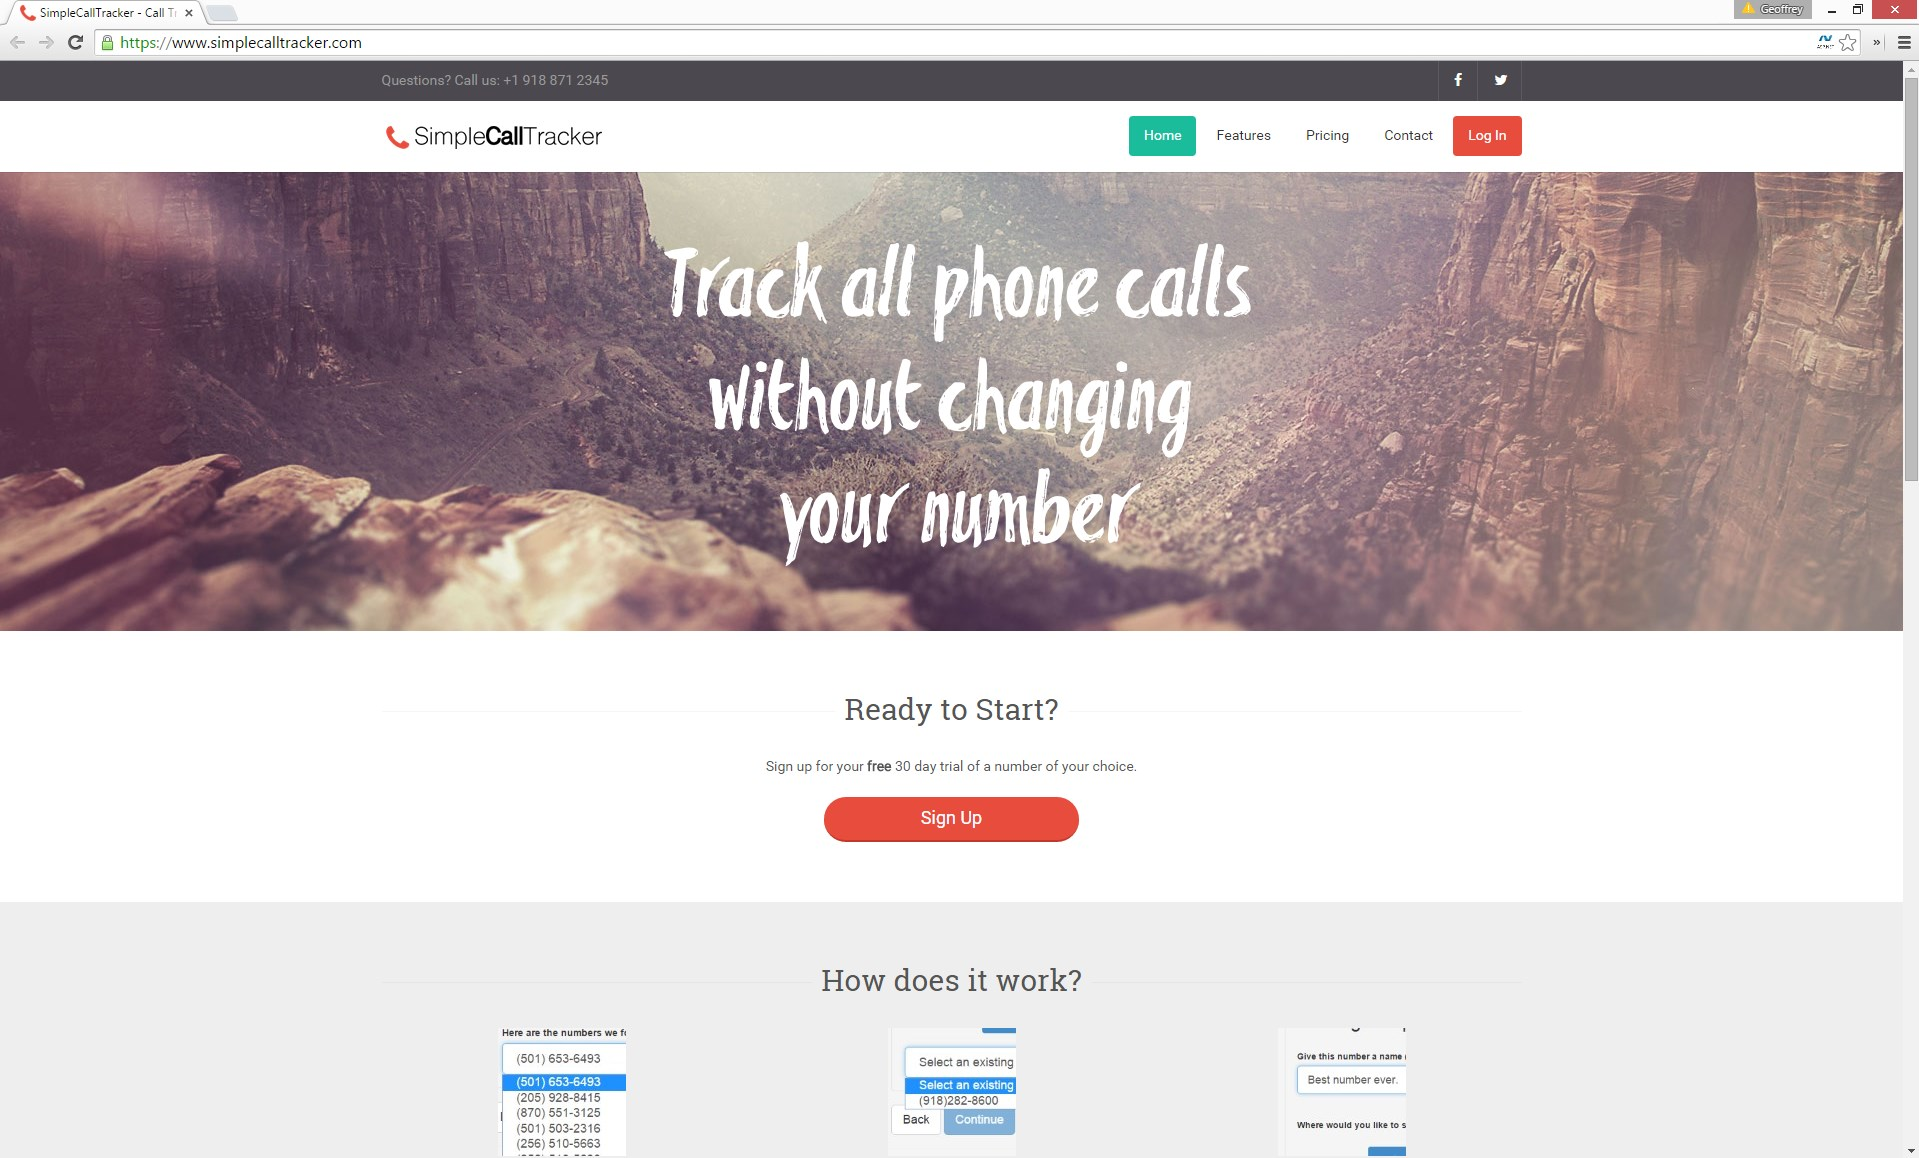 SimpleCallTracker